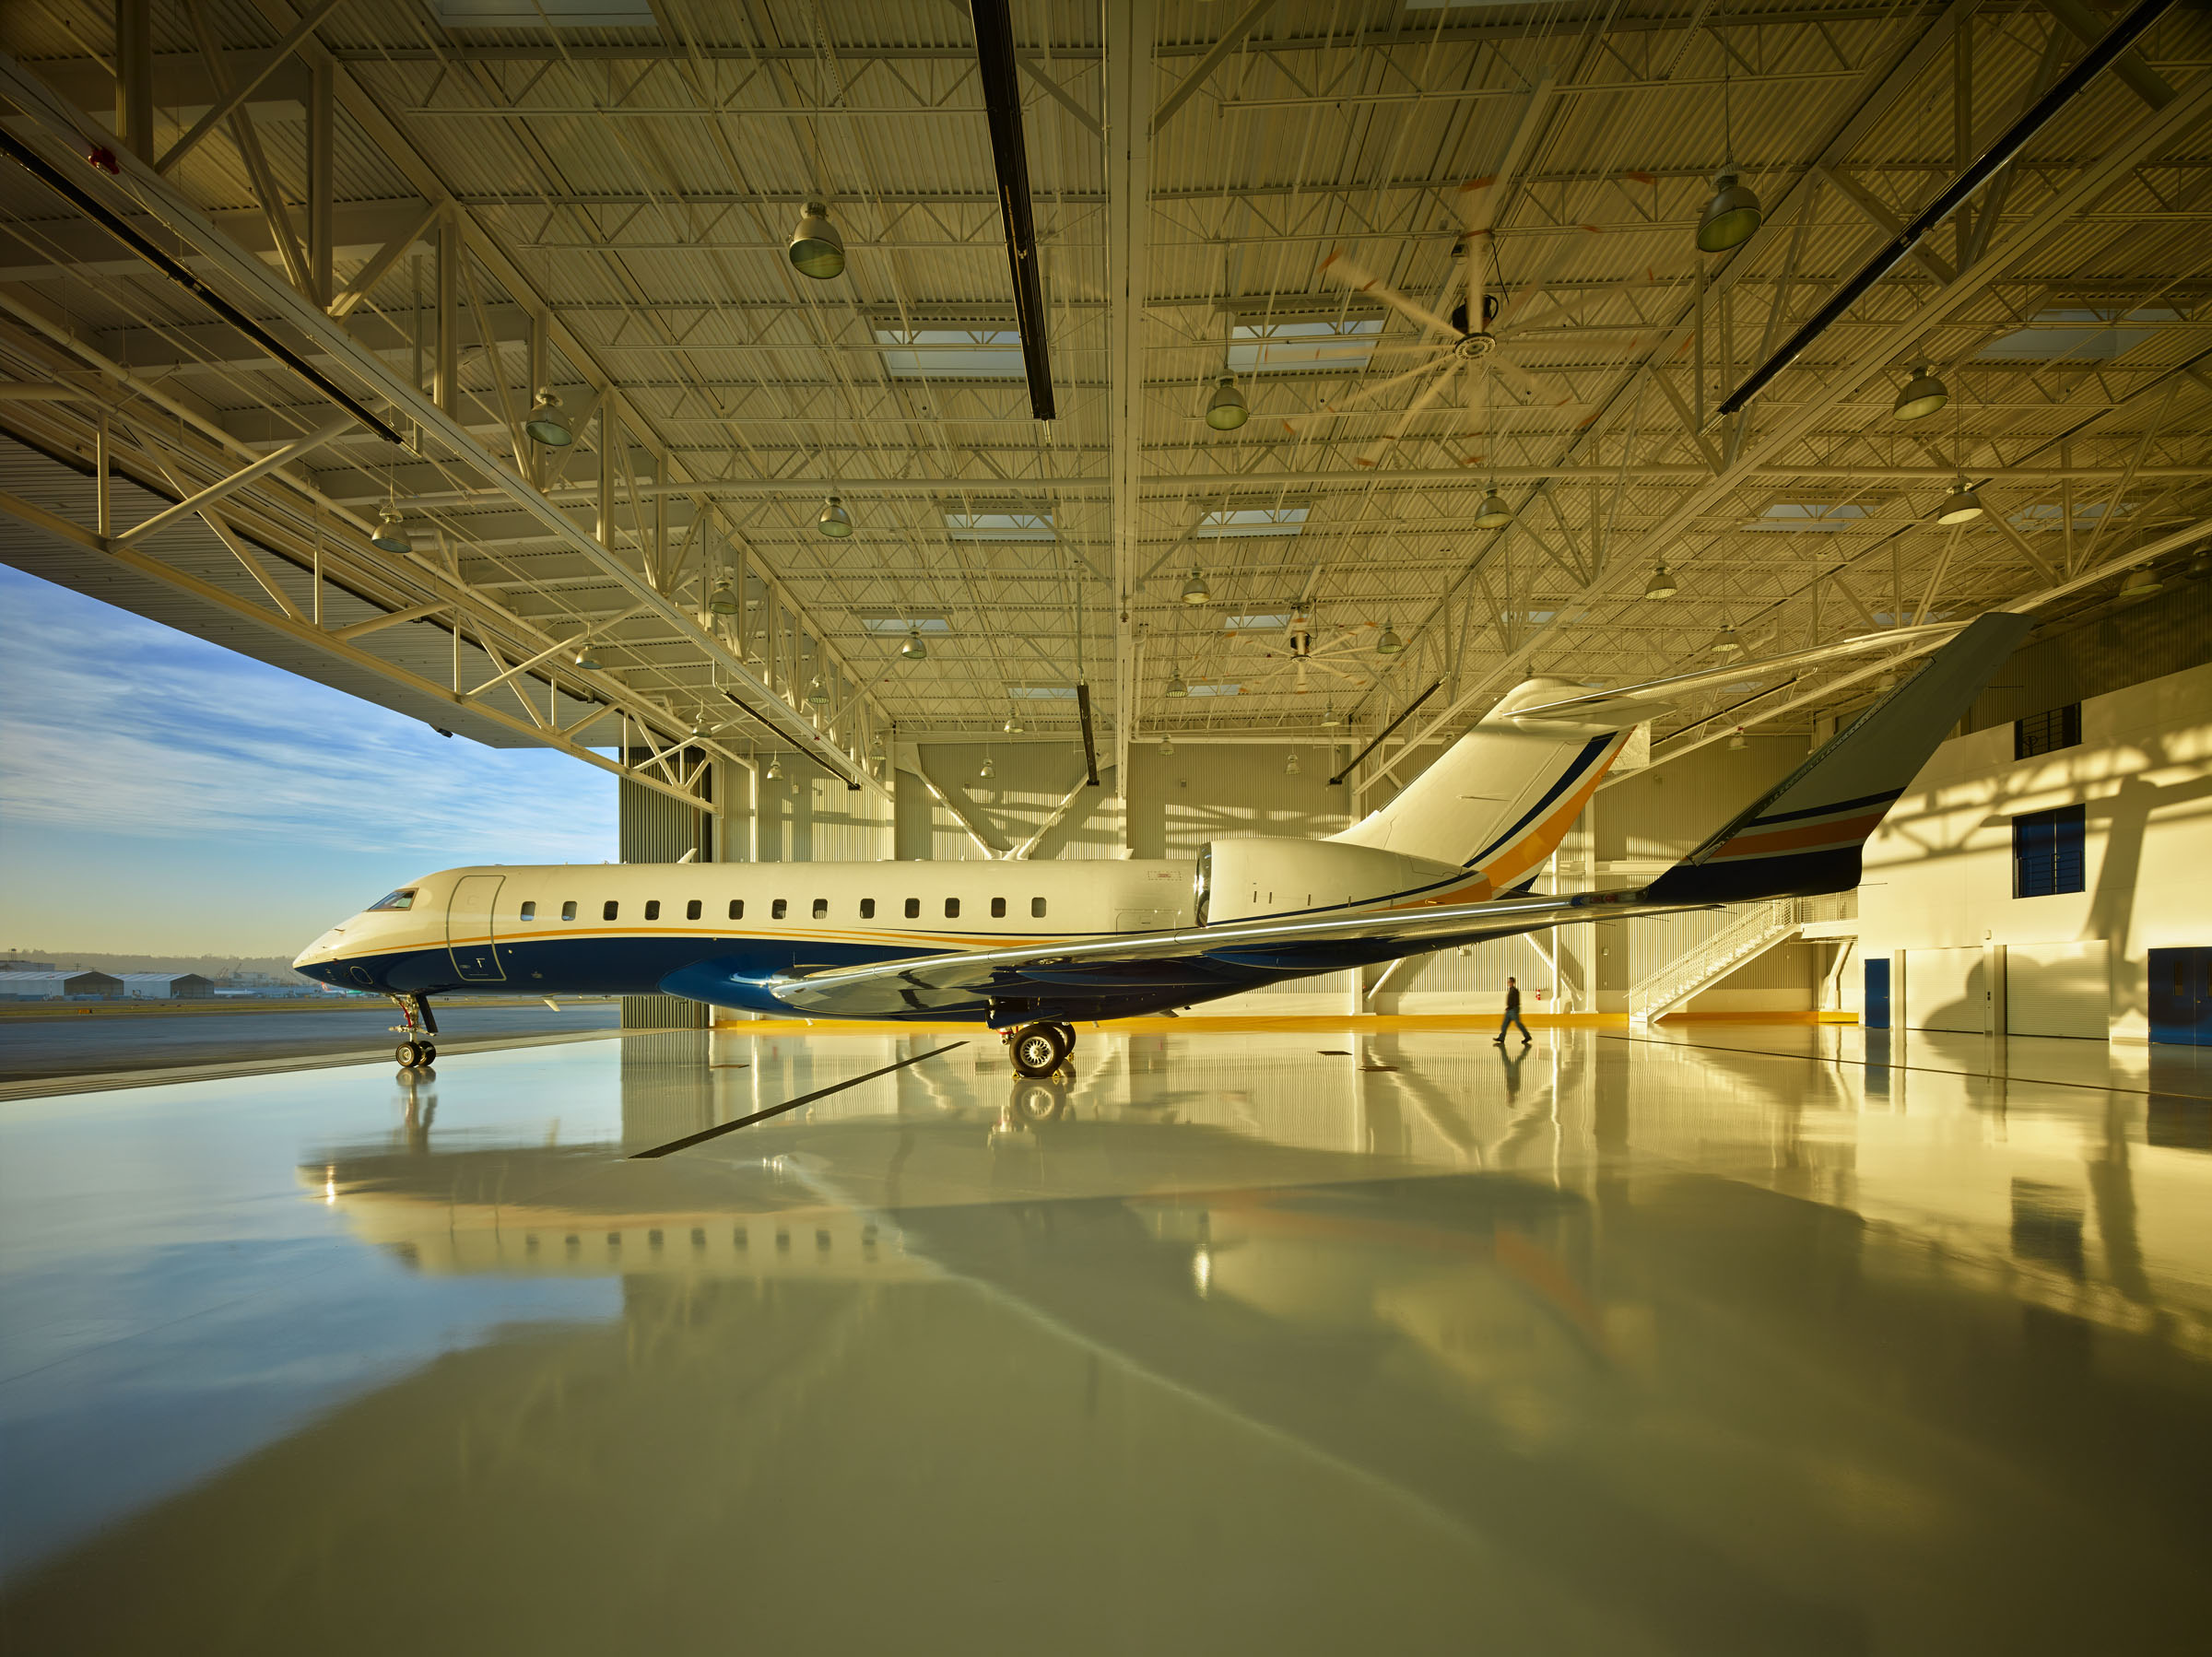 Northwest Airplane Hanger